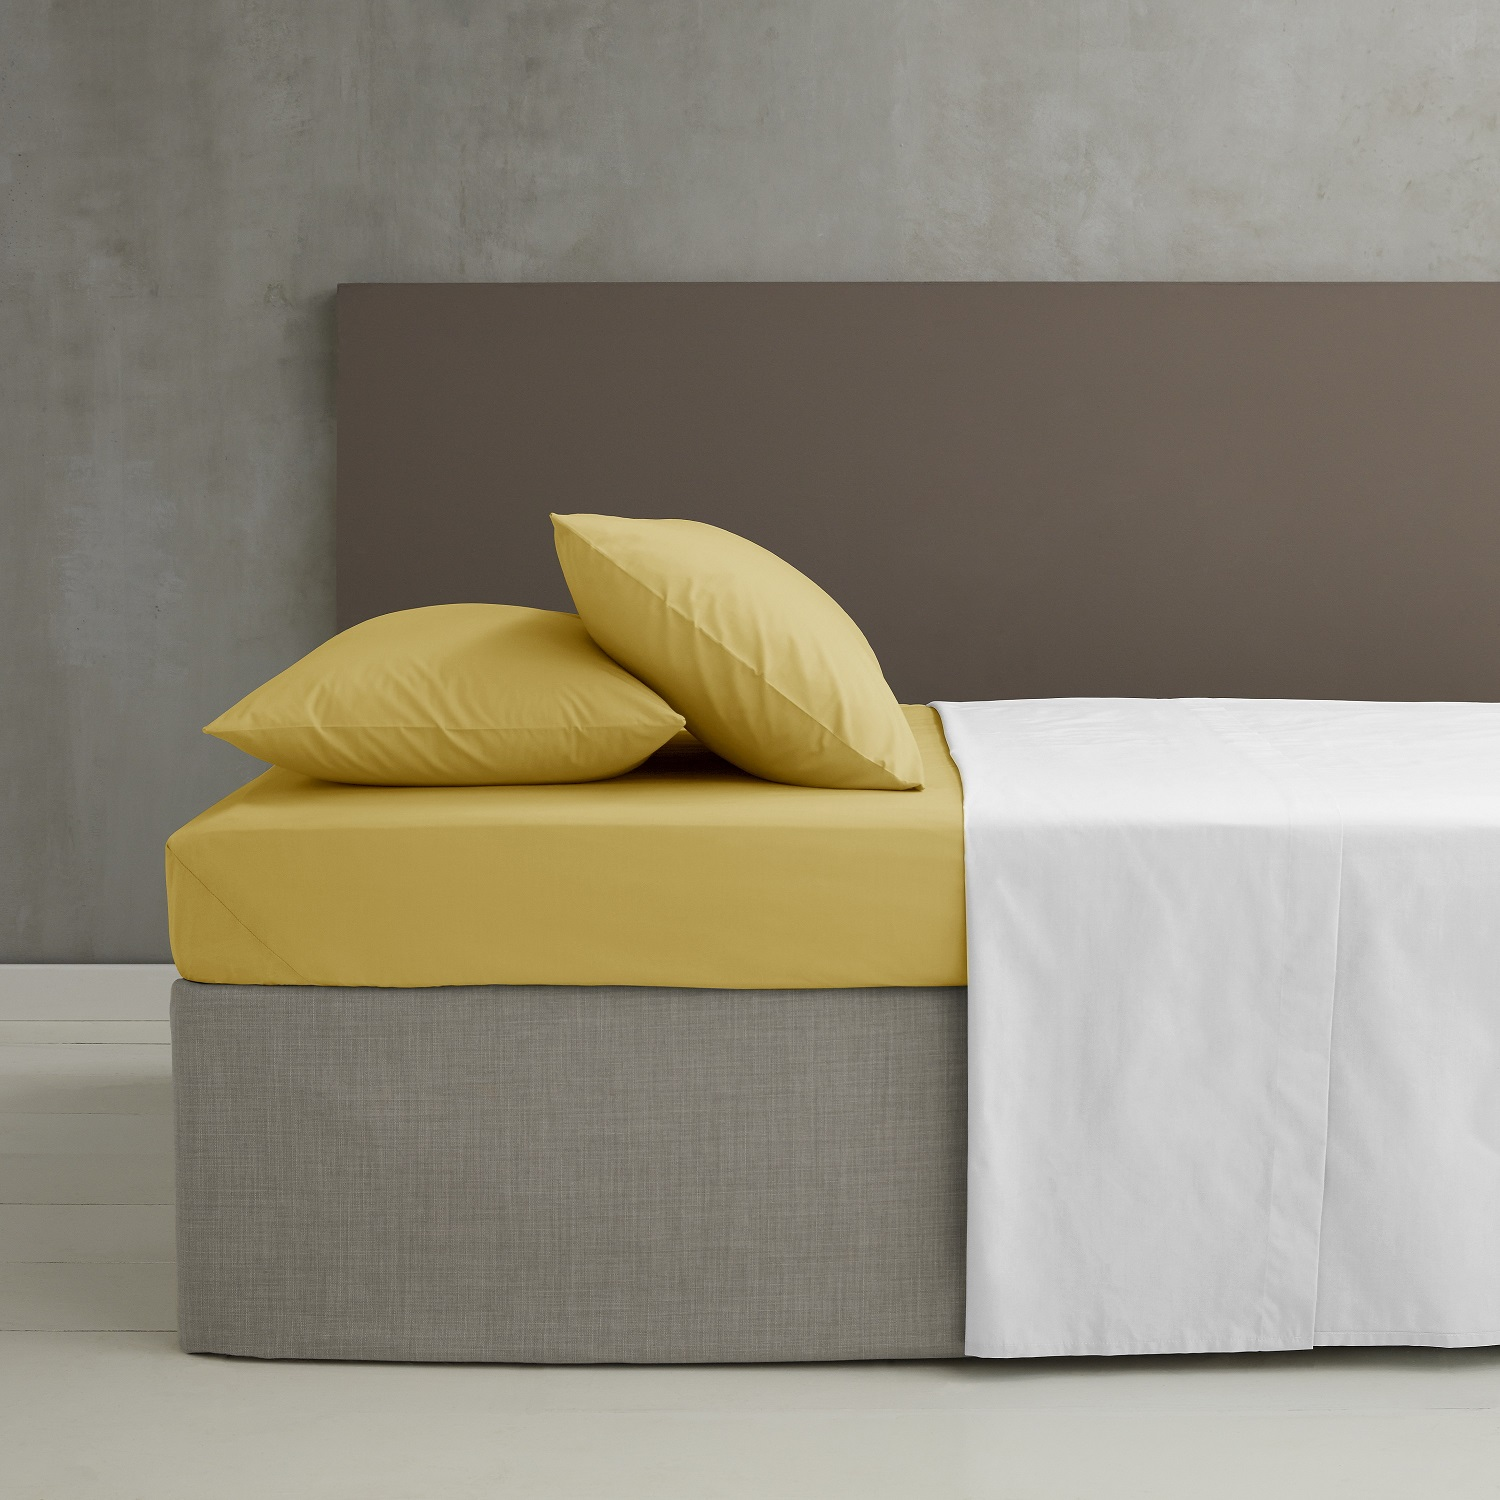 SoSoft Ochre Fitted Sheet